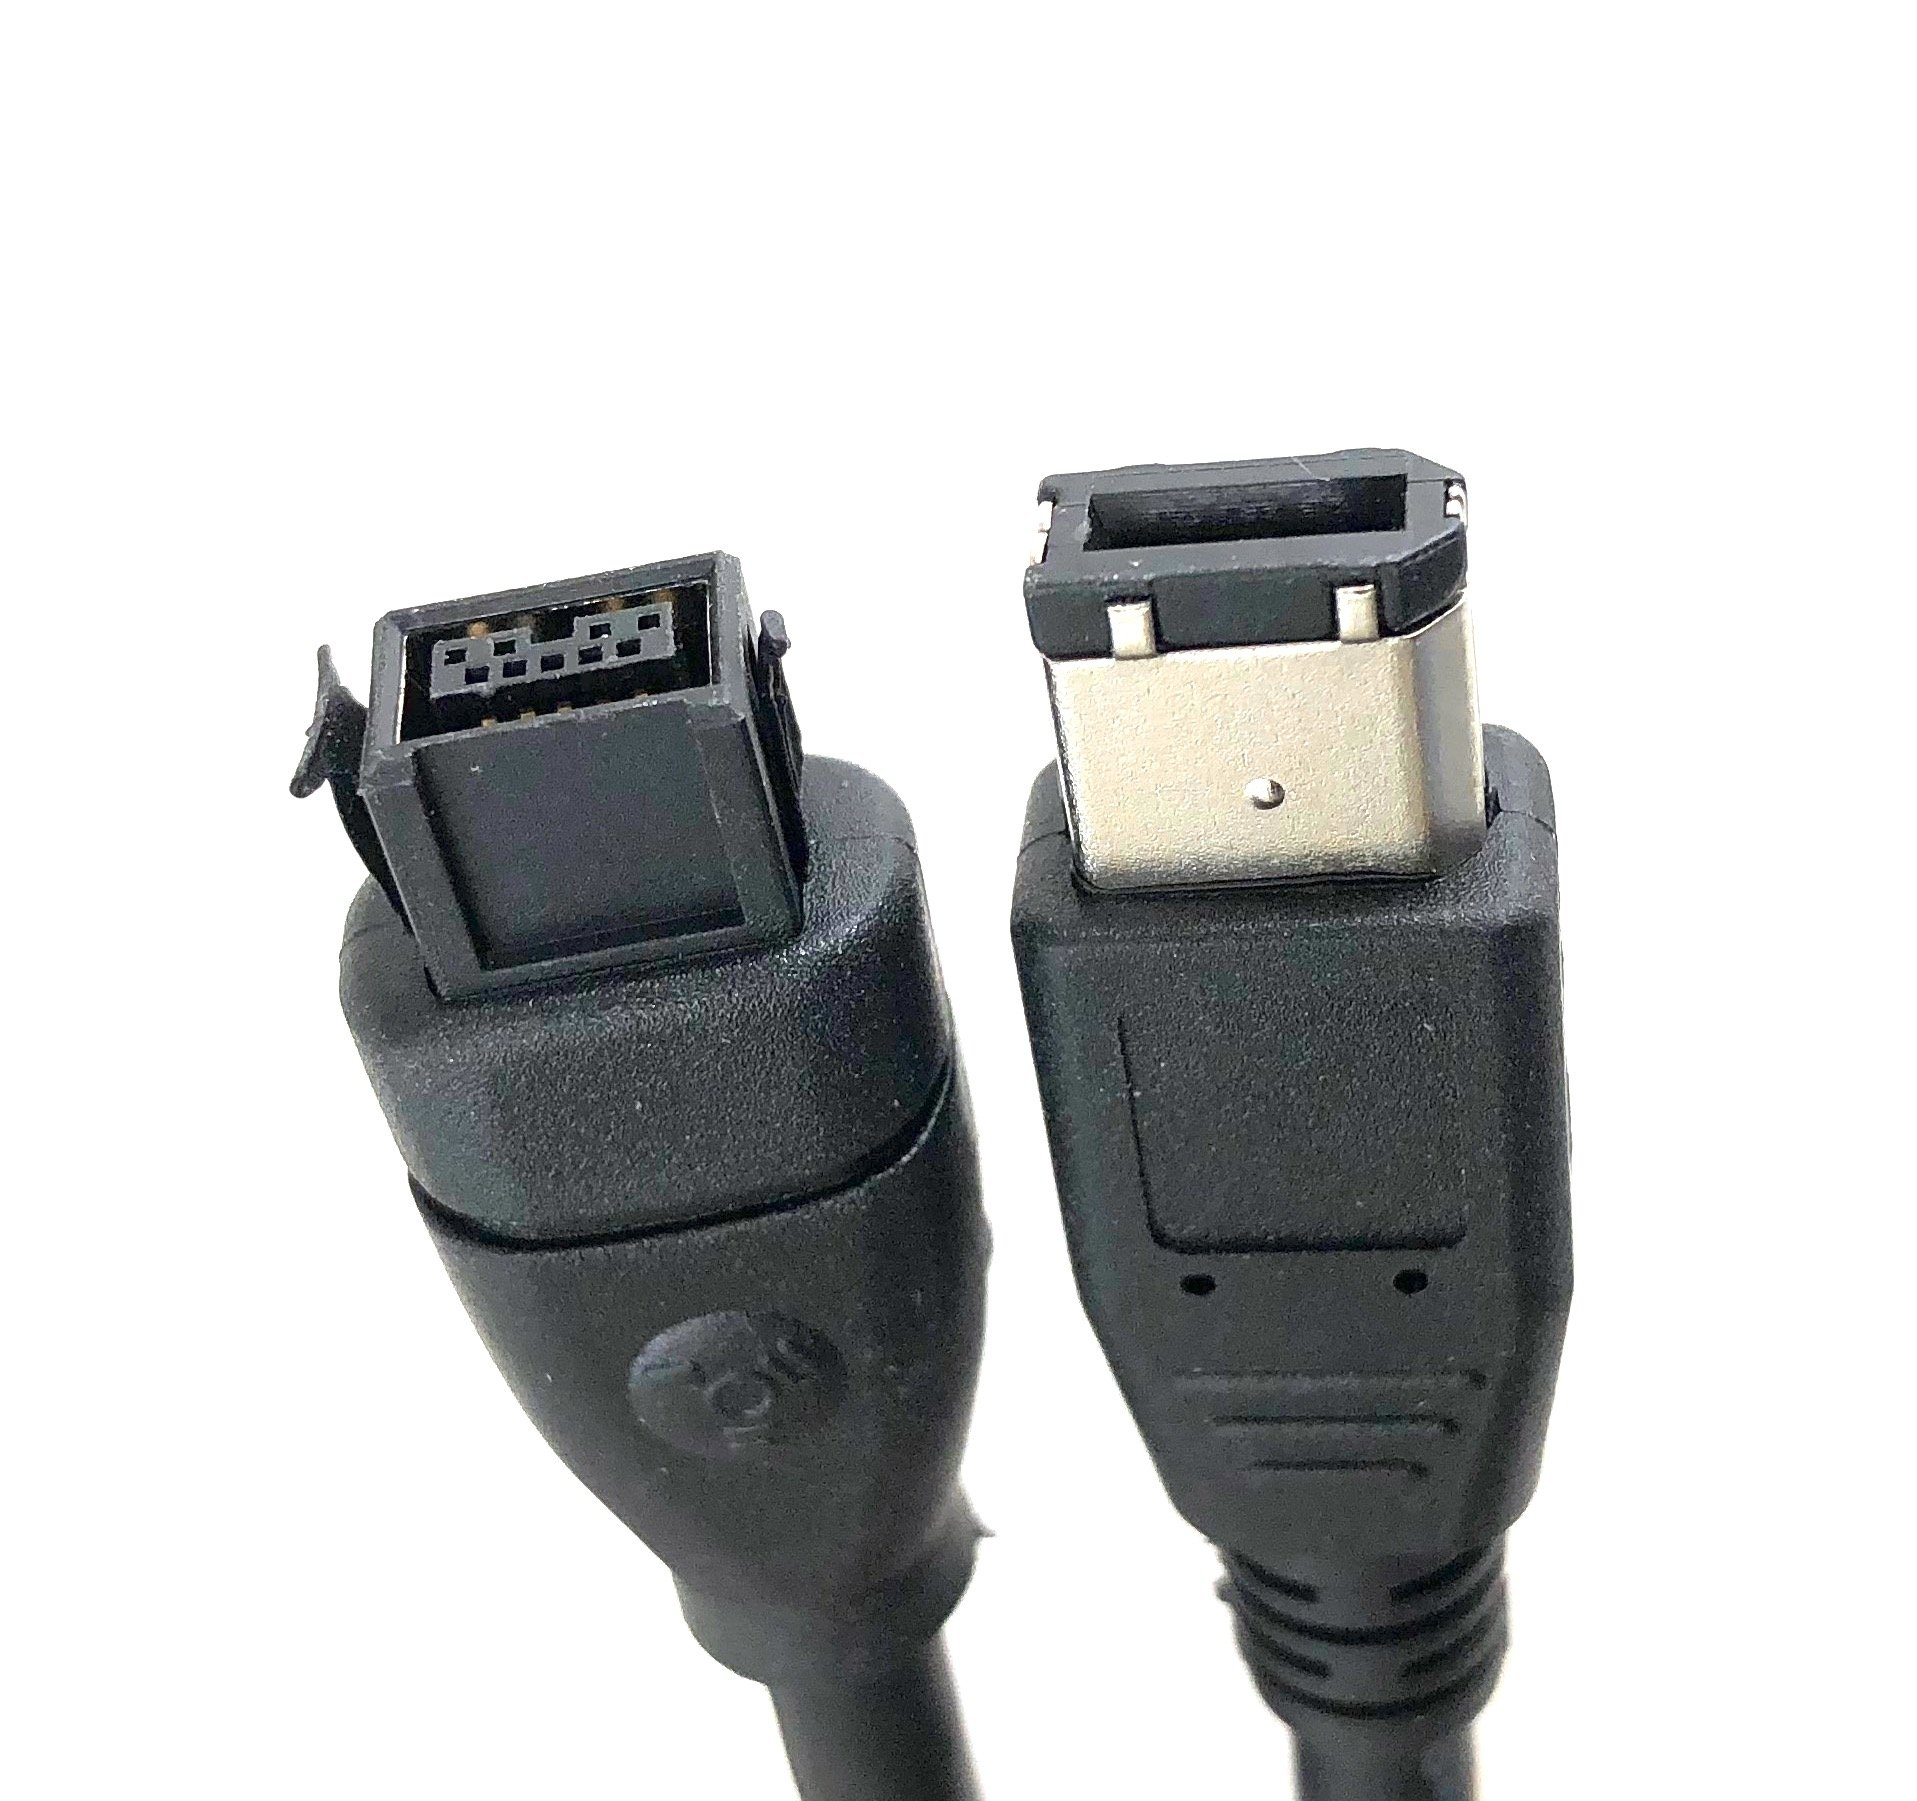 Micro Connectors, Inc. 10 feet Firewire IEEE 1394 9 Pin to 6 Pin Cable (E07-239) by MICRO CONNECTORS